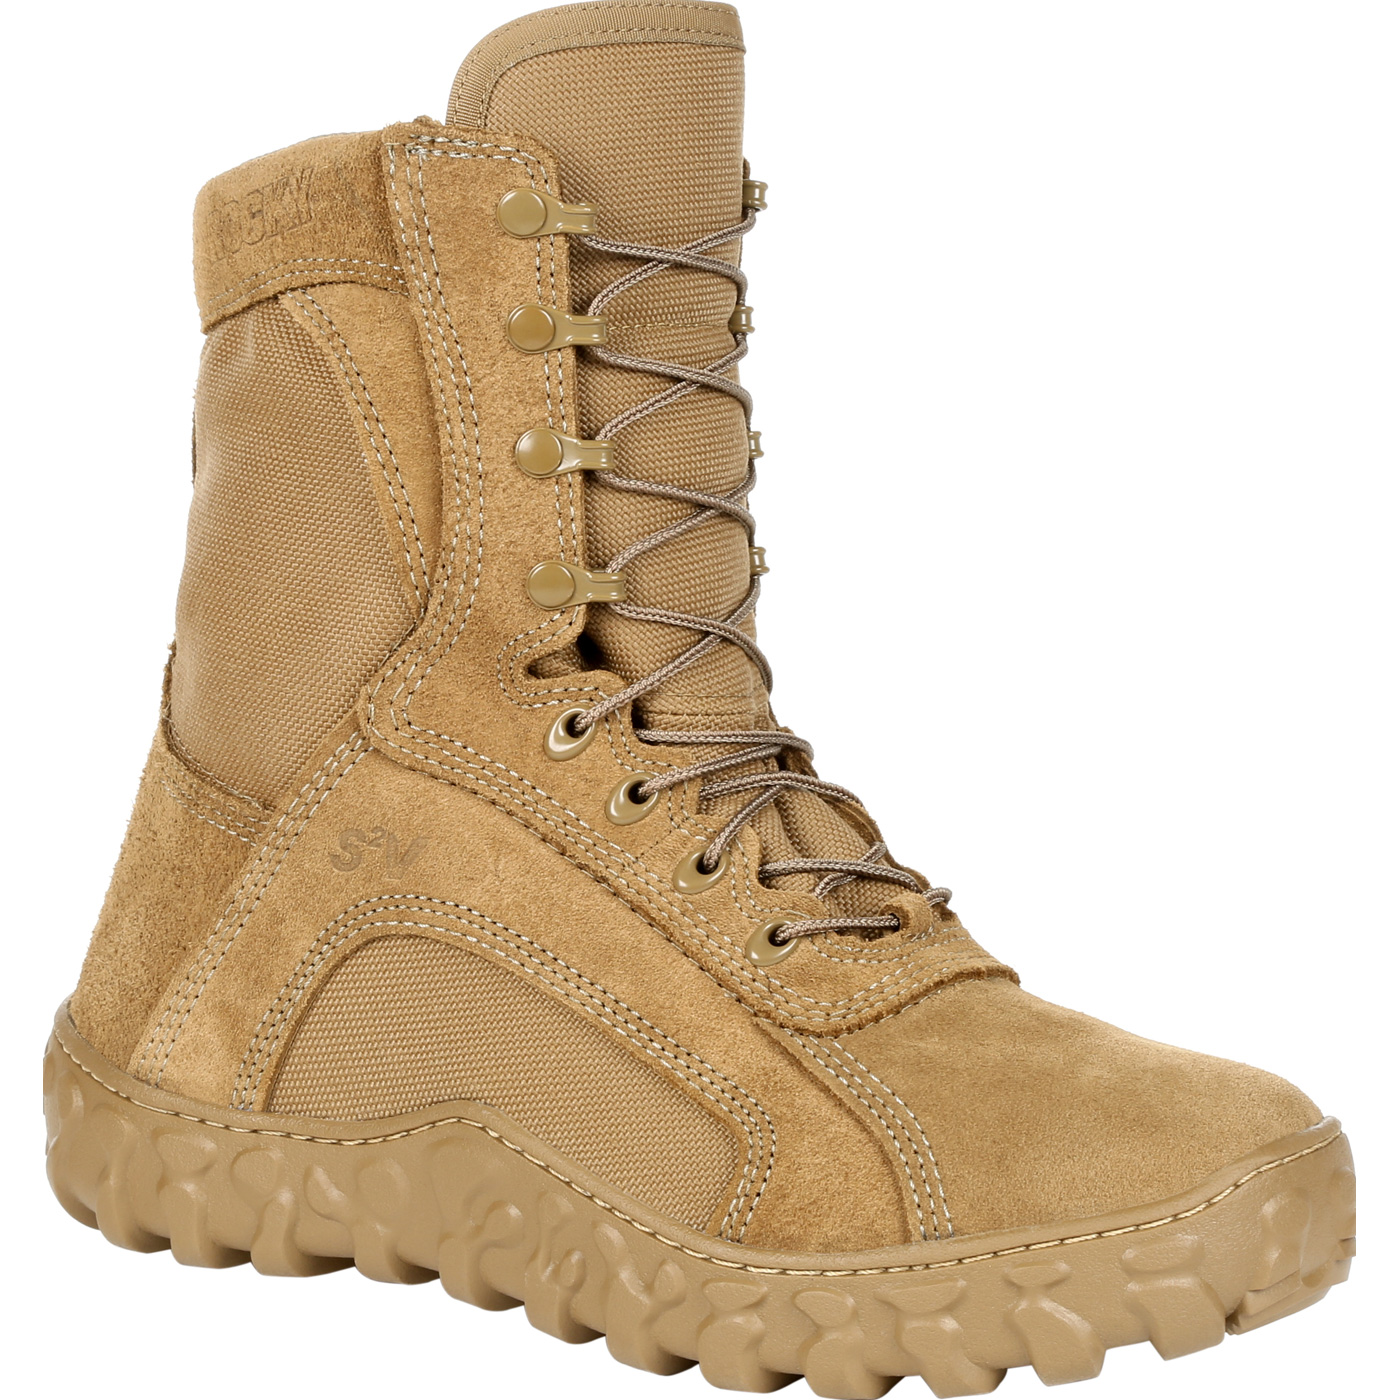 ROCKY US Army Boots | Army Boot | Men's Army Boots